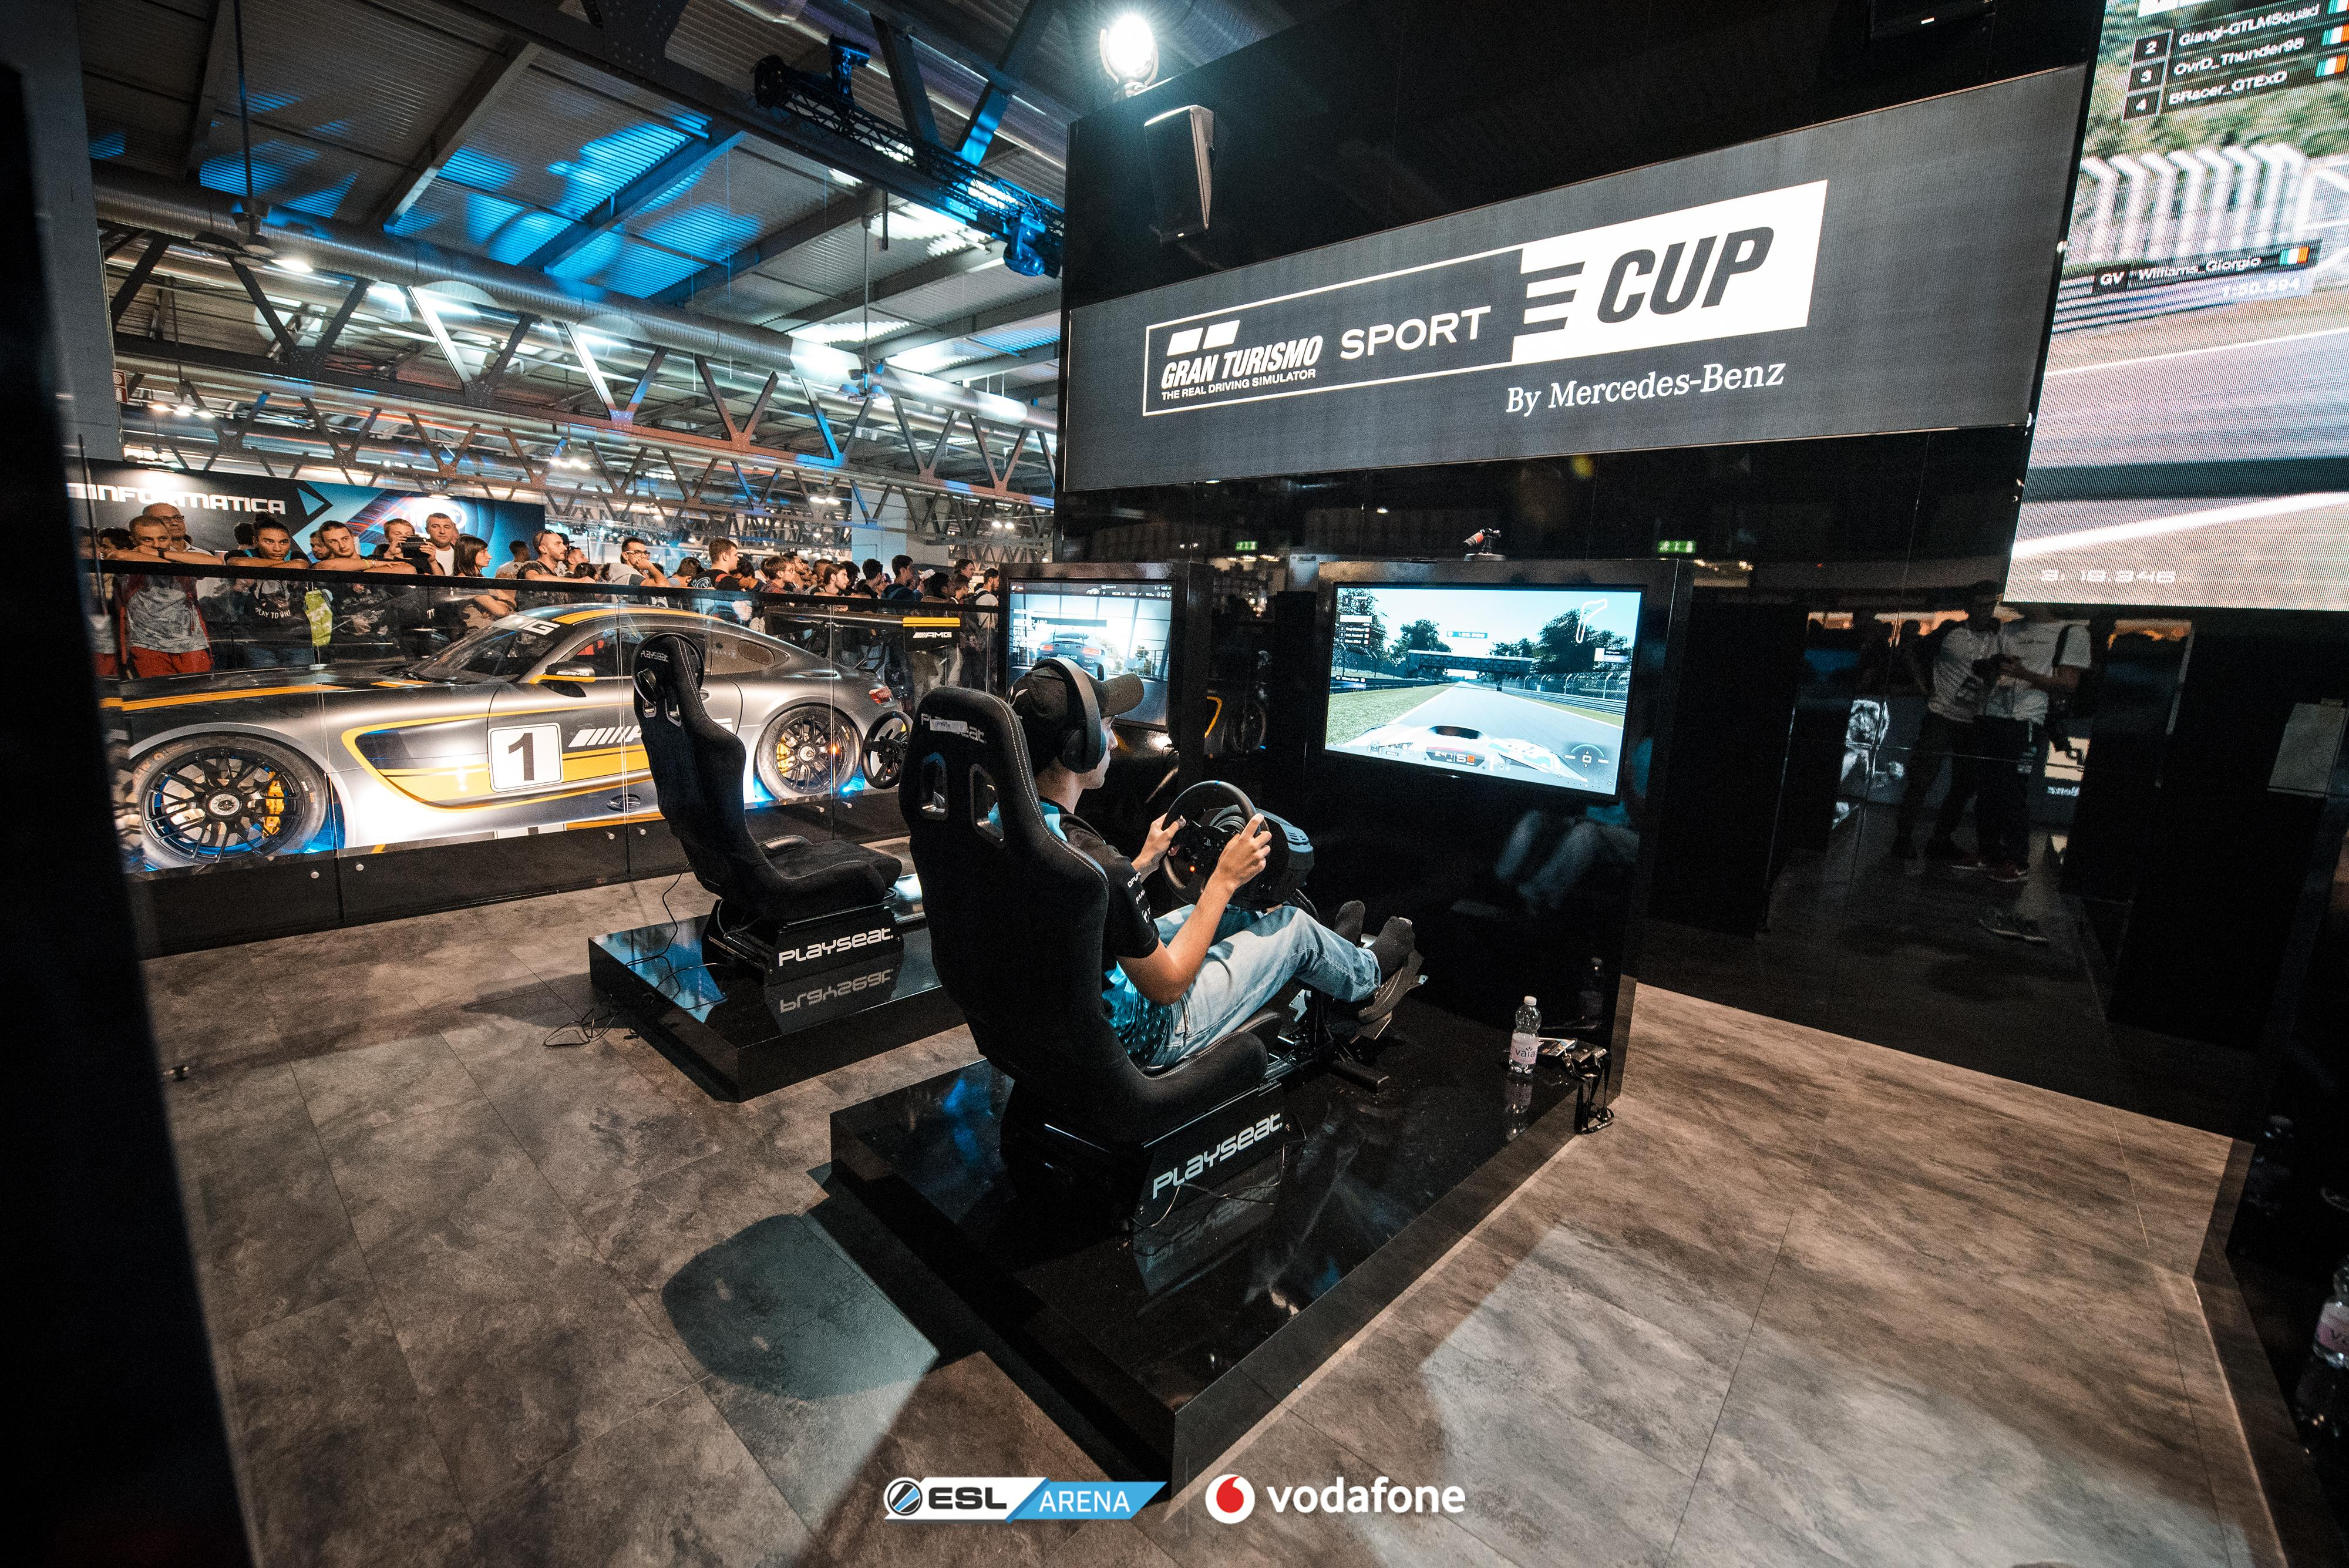 GT Sport e-Cup #2 by Mercedes-Benz - Il podio